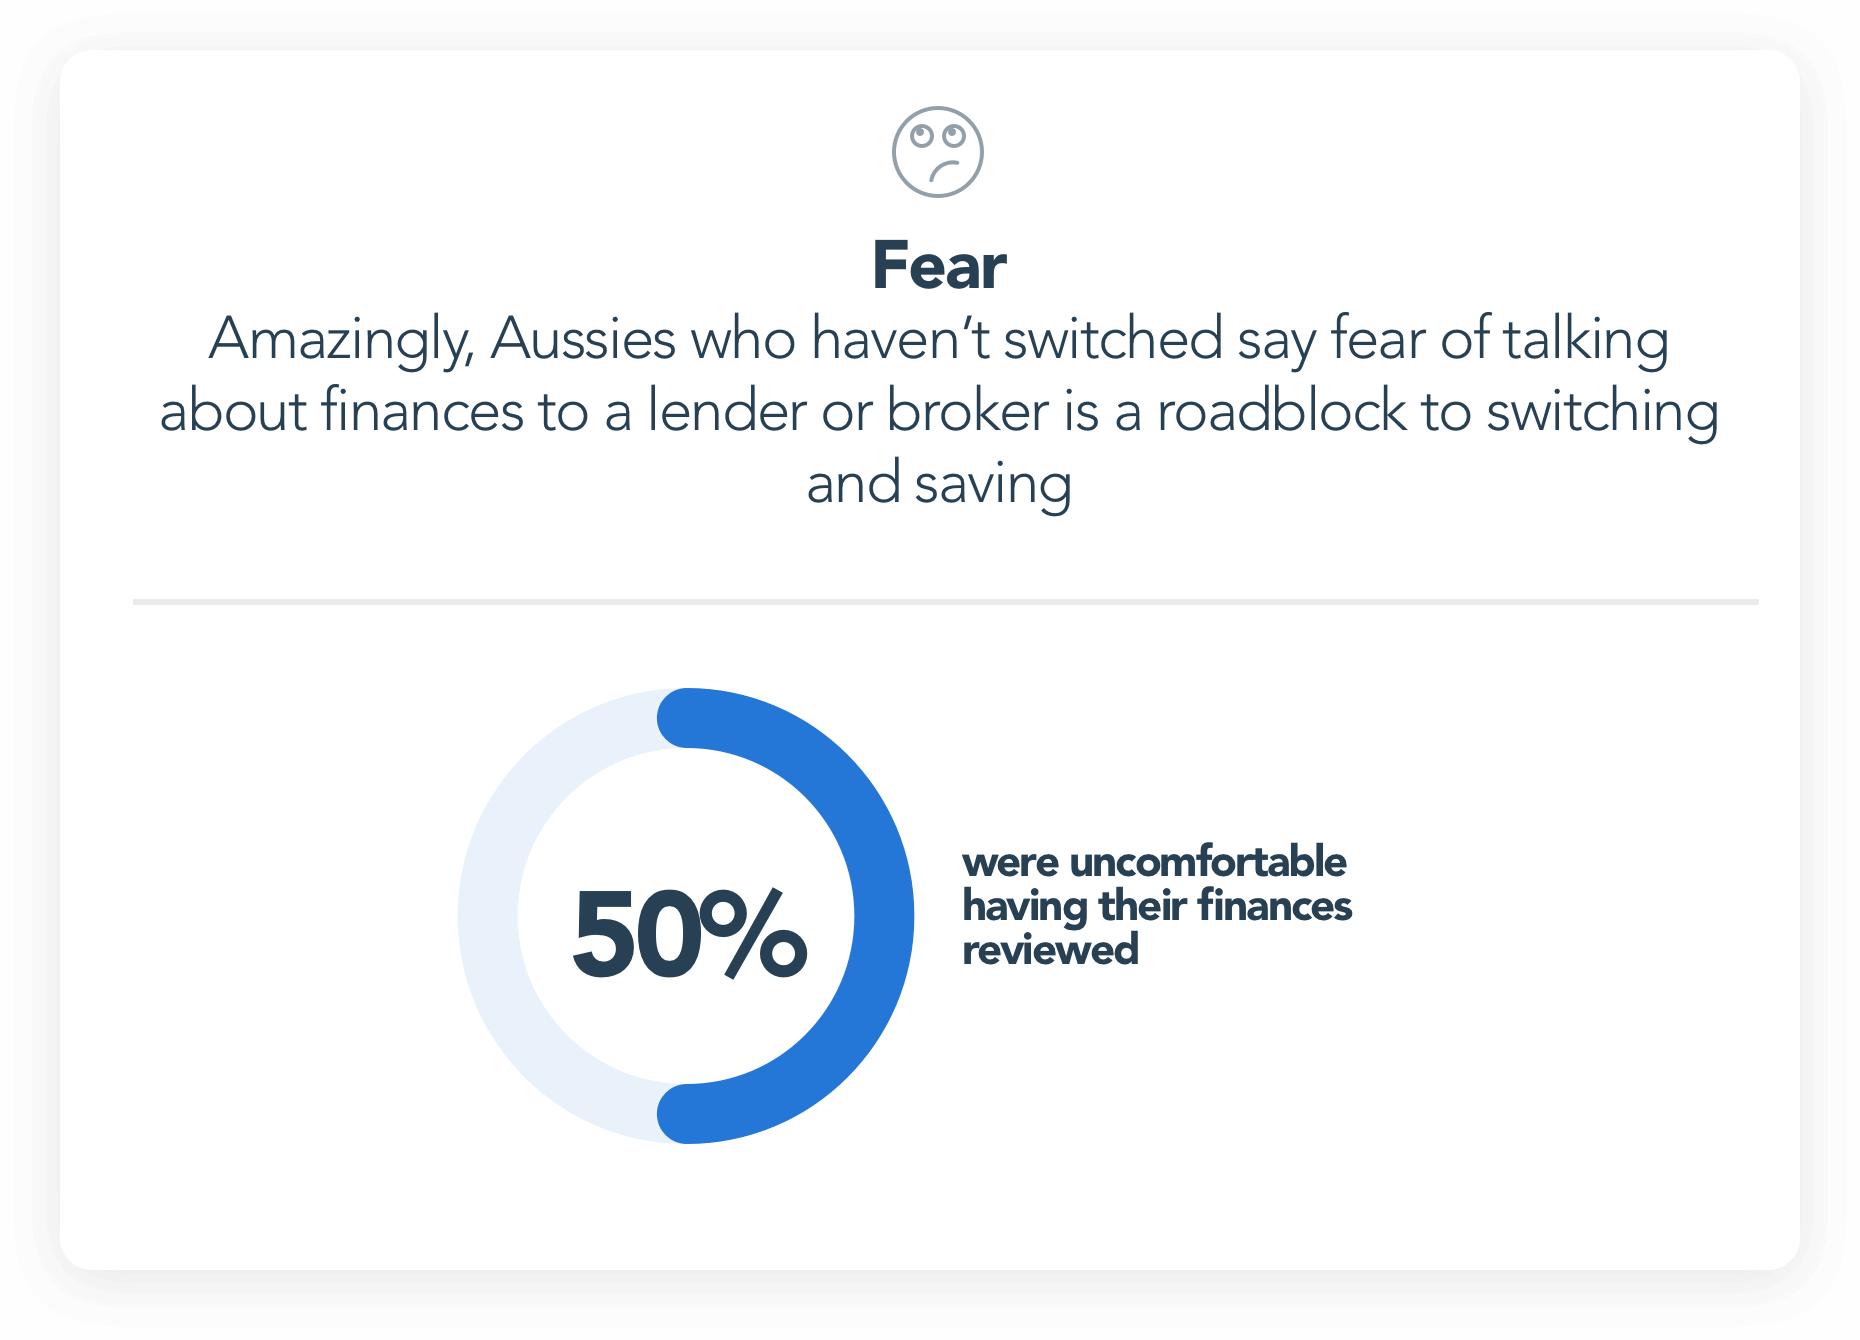 Aussies are uncomfortable with having our finances reviewed